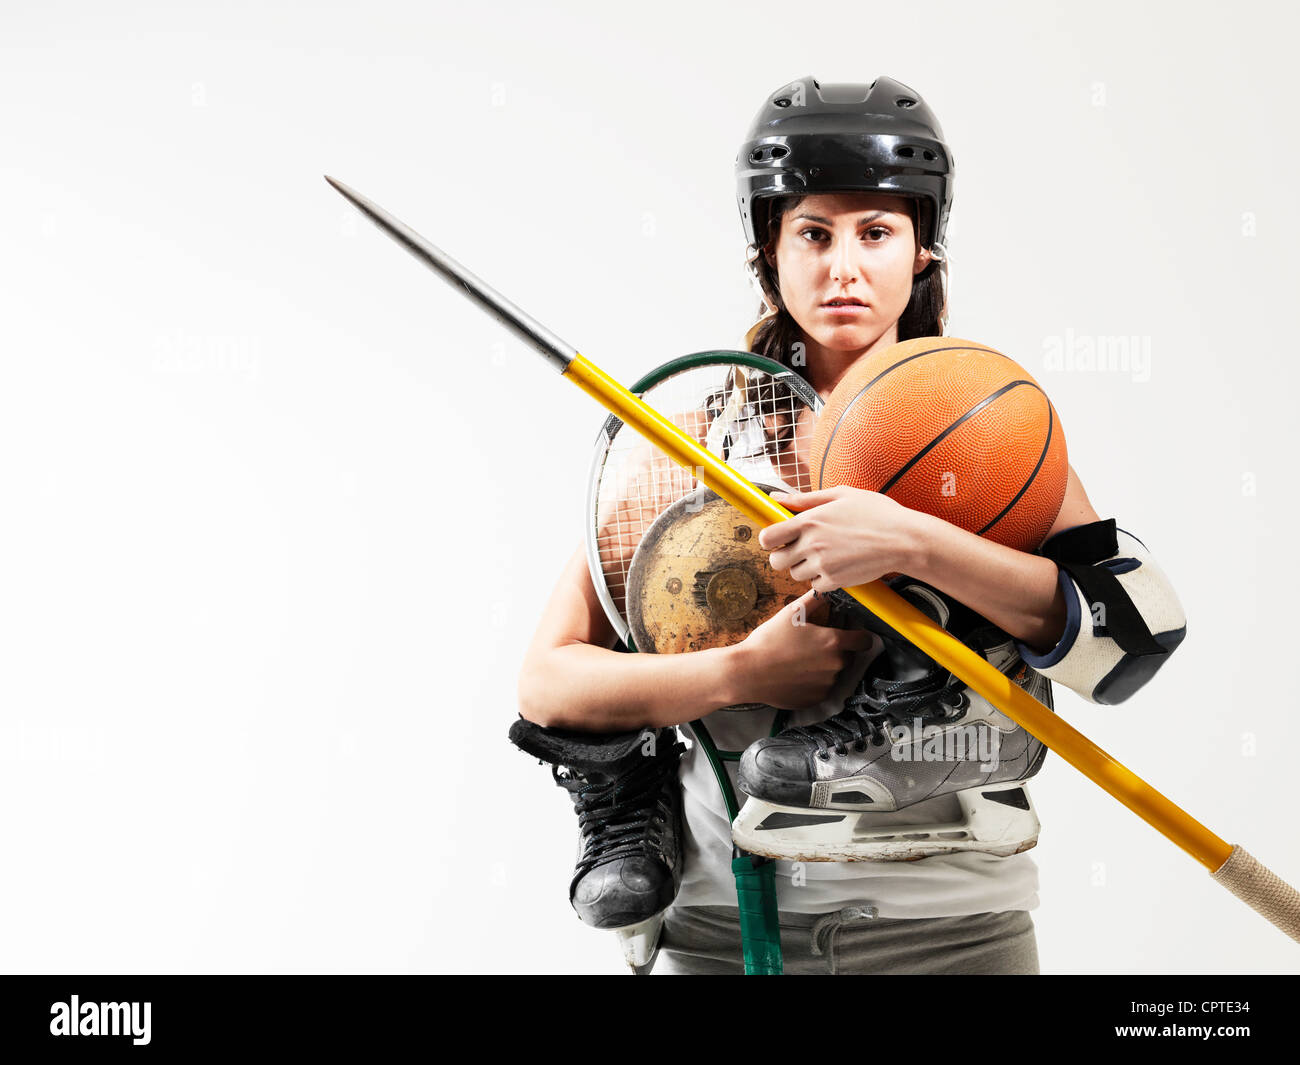 Young woman holding sports equipment against white background - Stock Image